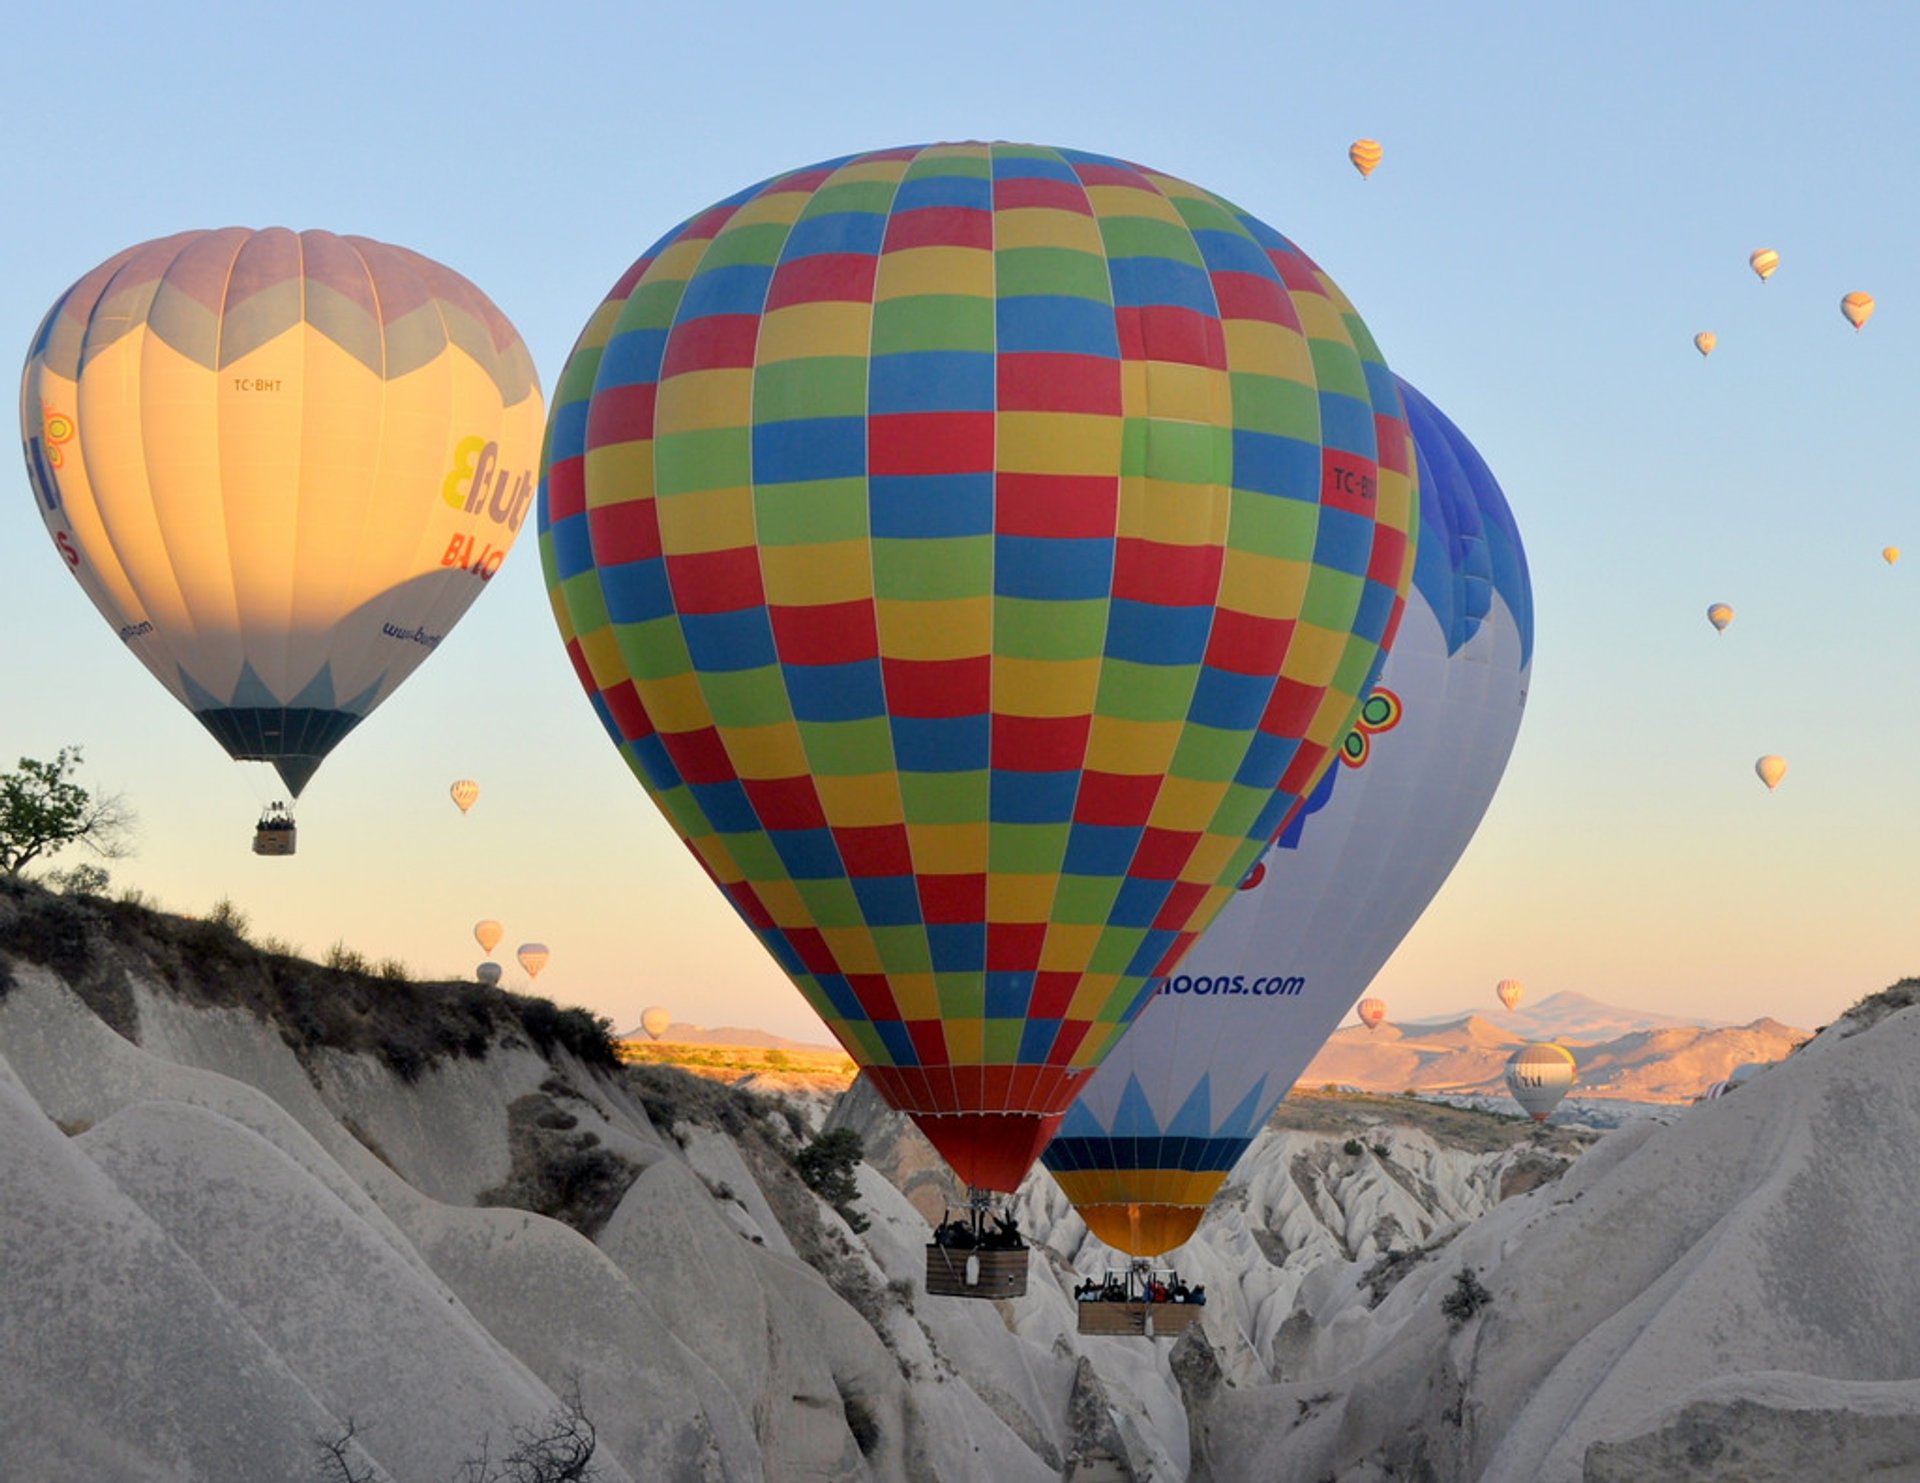 Best time to see Ballooning Сhallenge in Cappadocia 2020